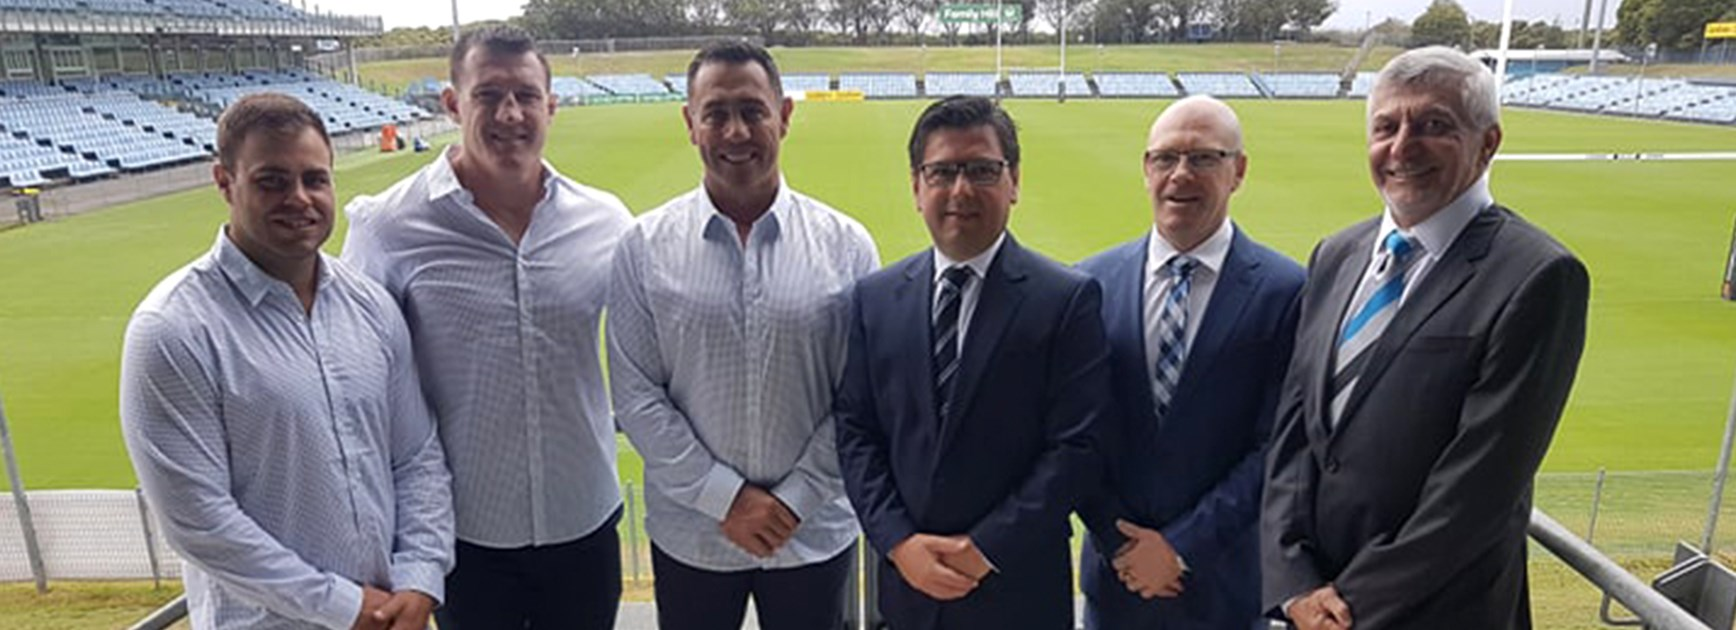 Members endorse stability at the Sharks